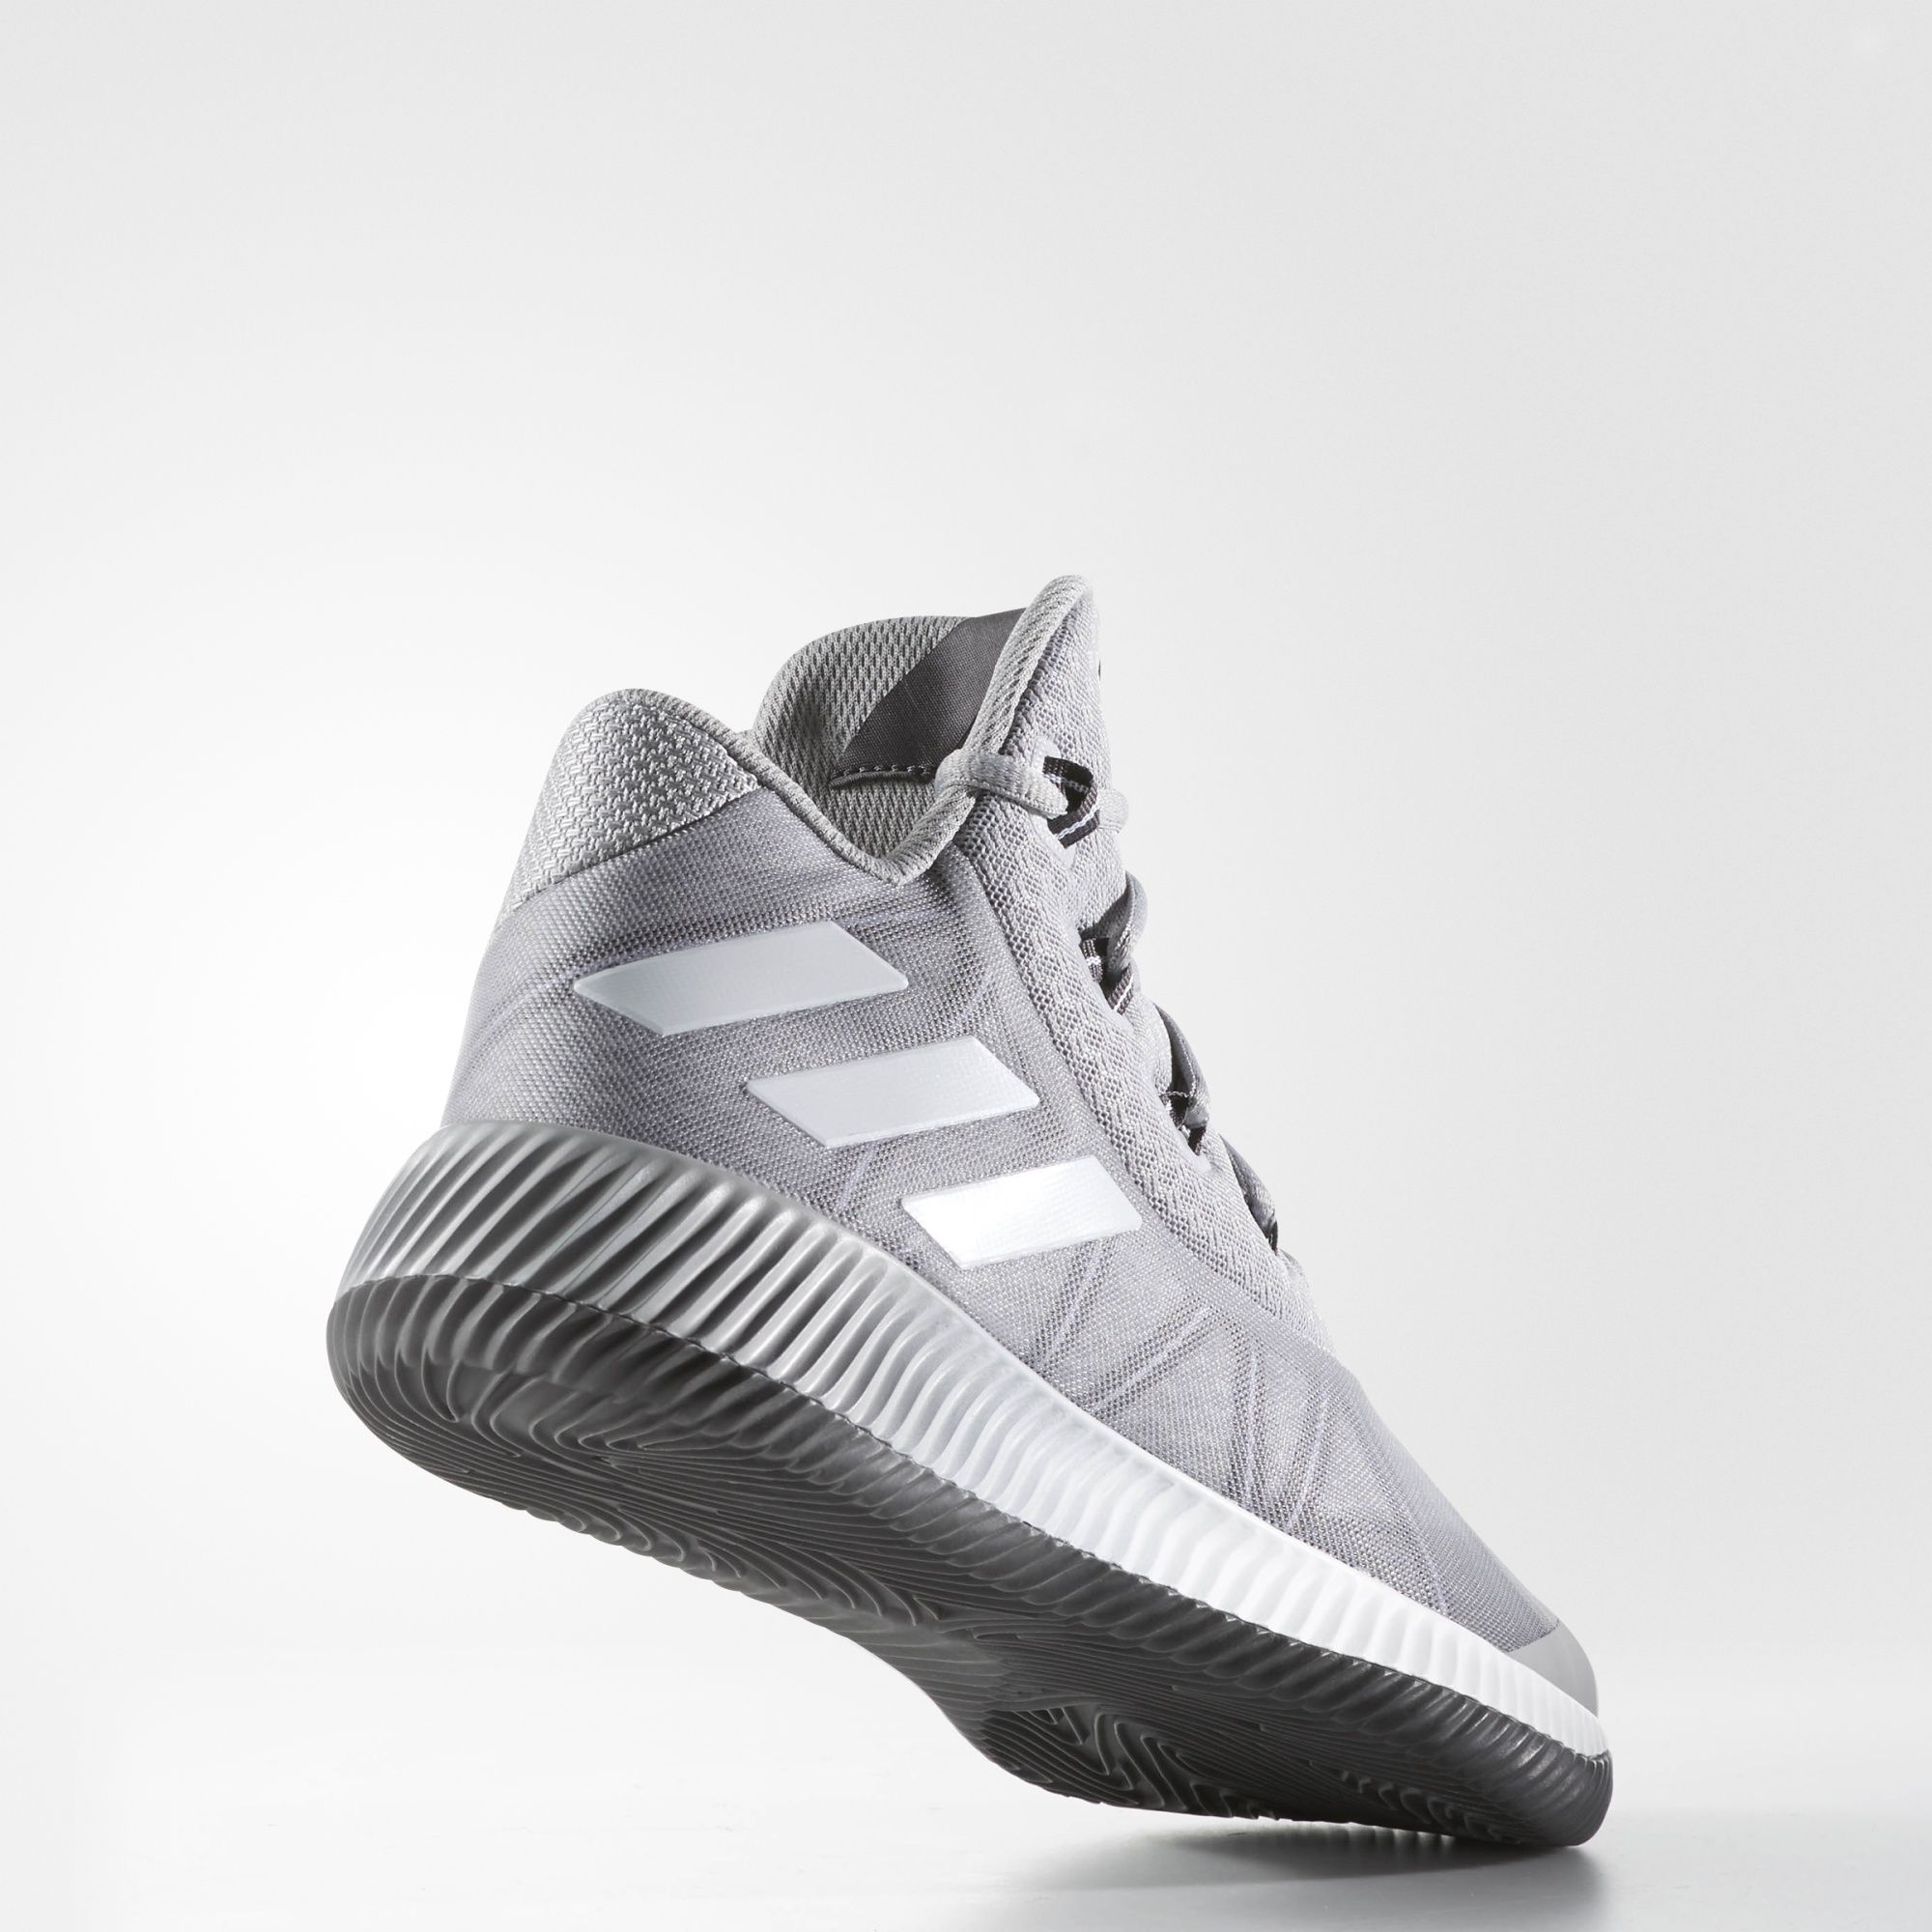 adidas light em up 2017